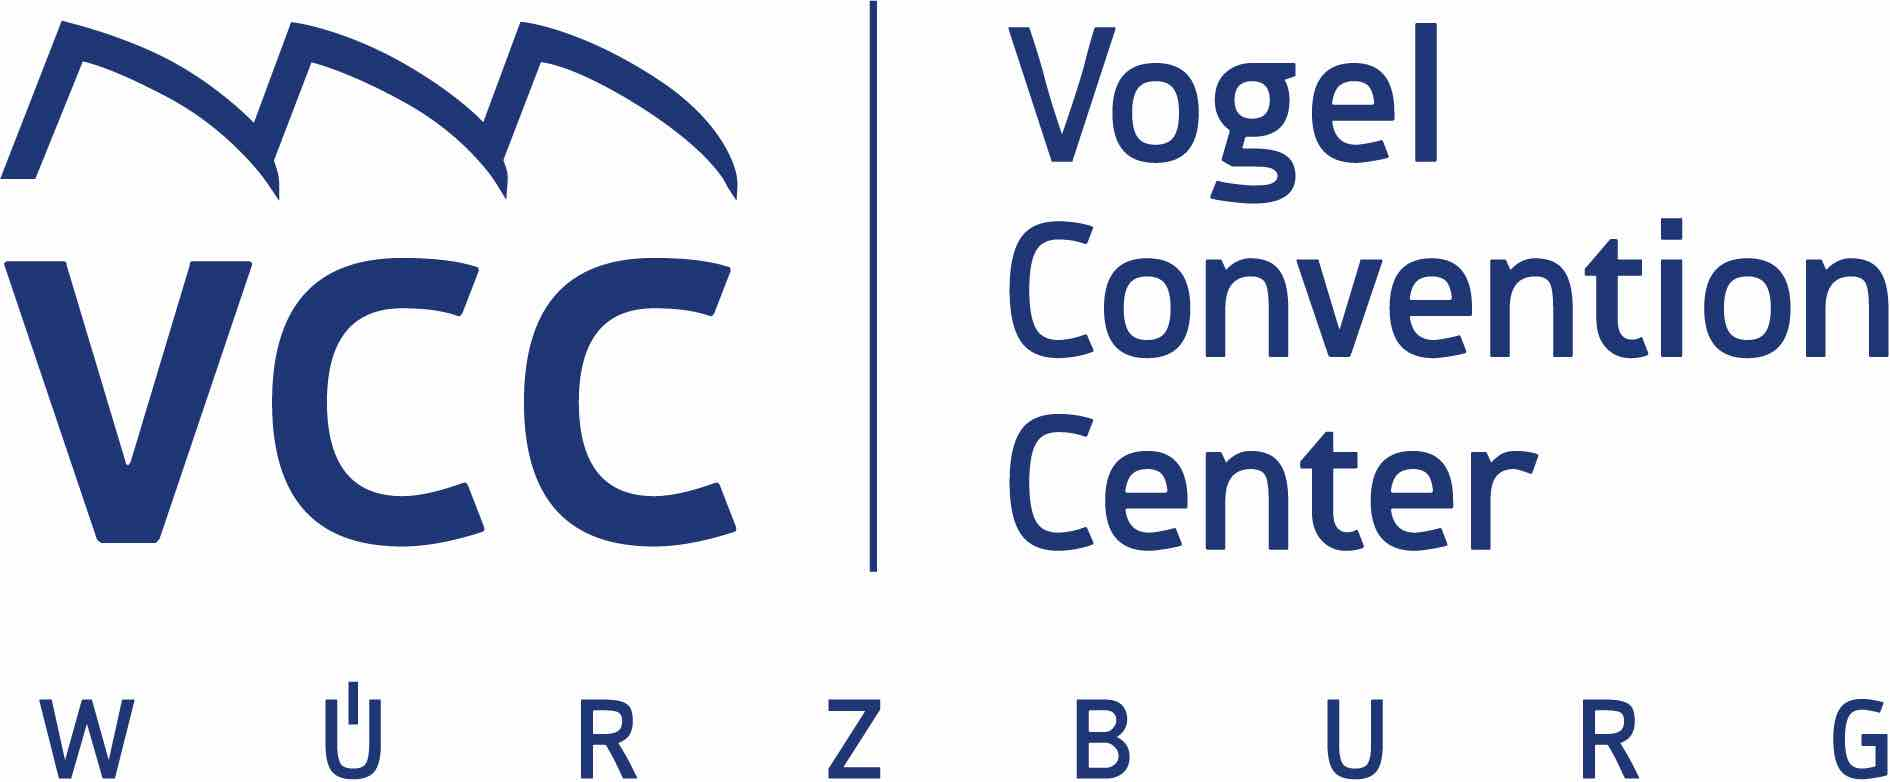 Vogel Convention Center